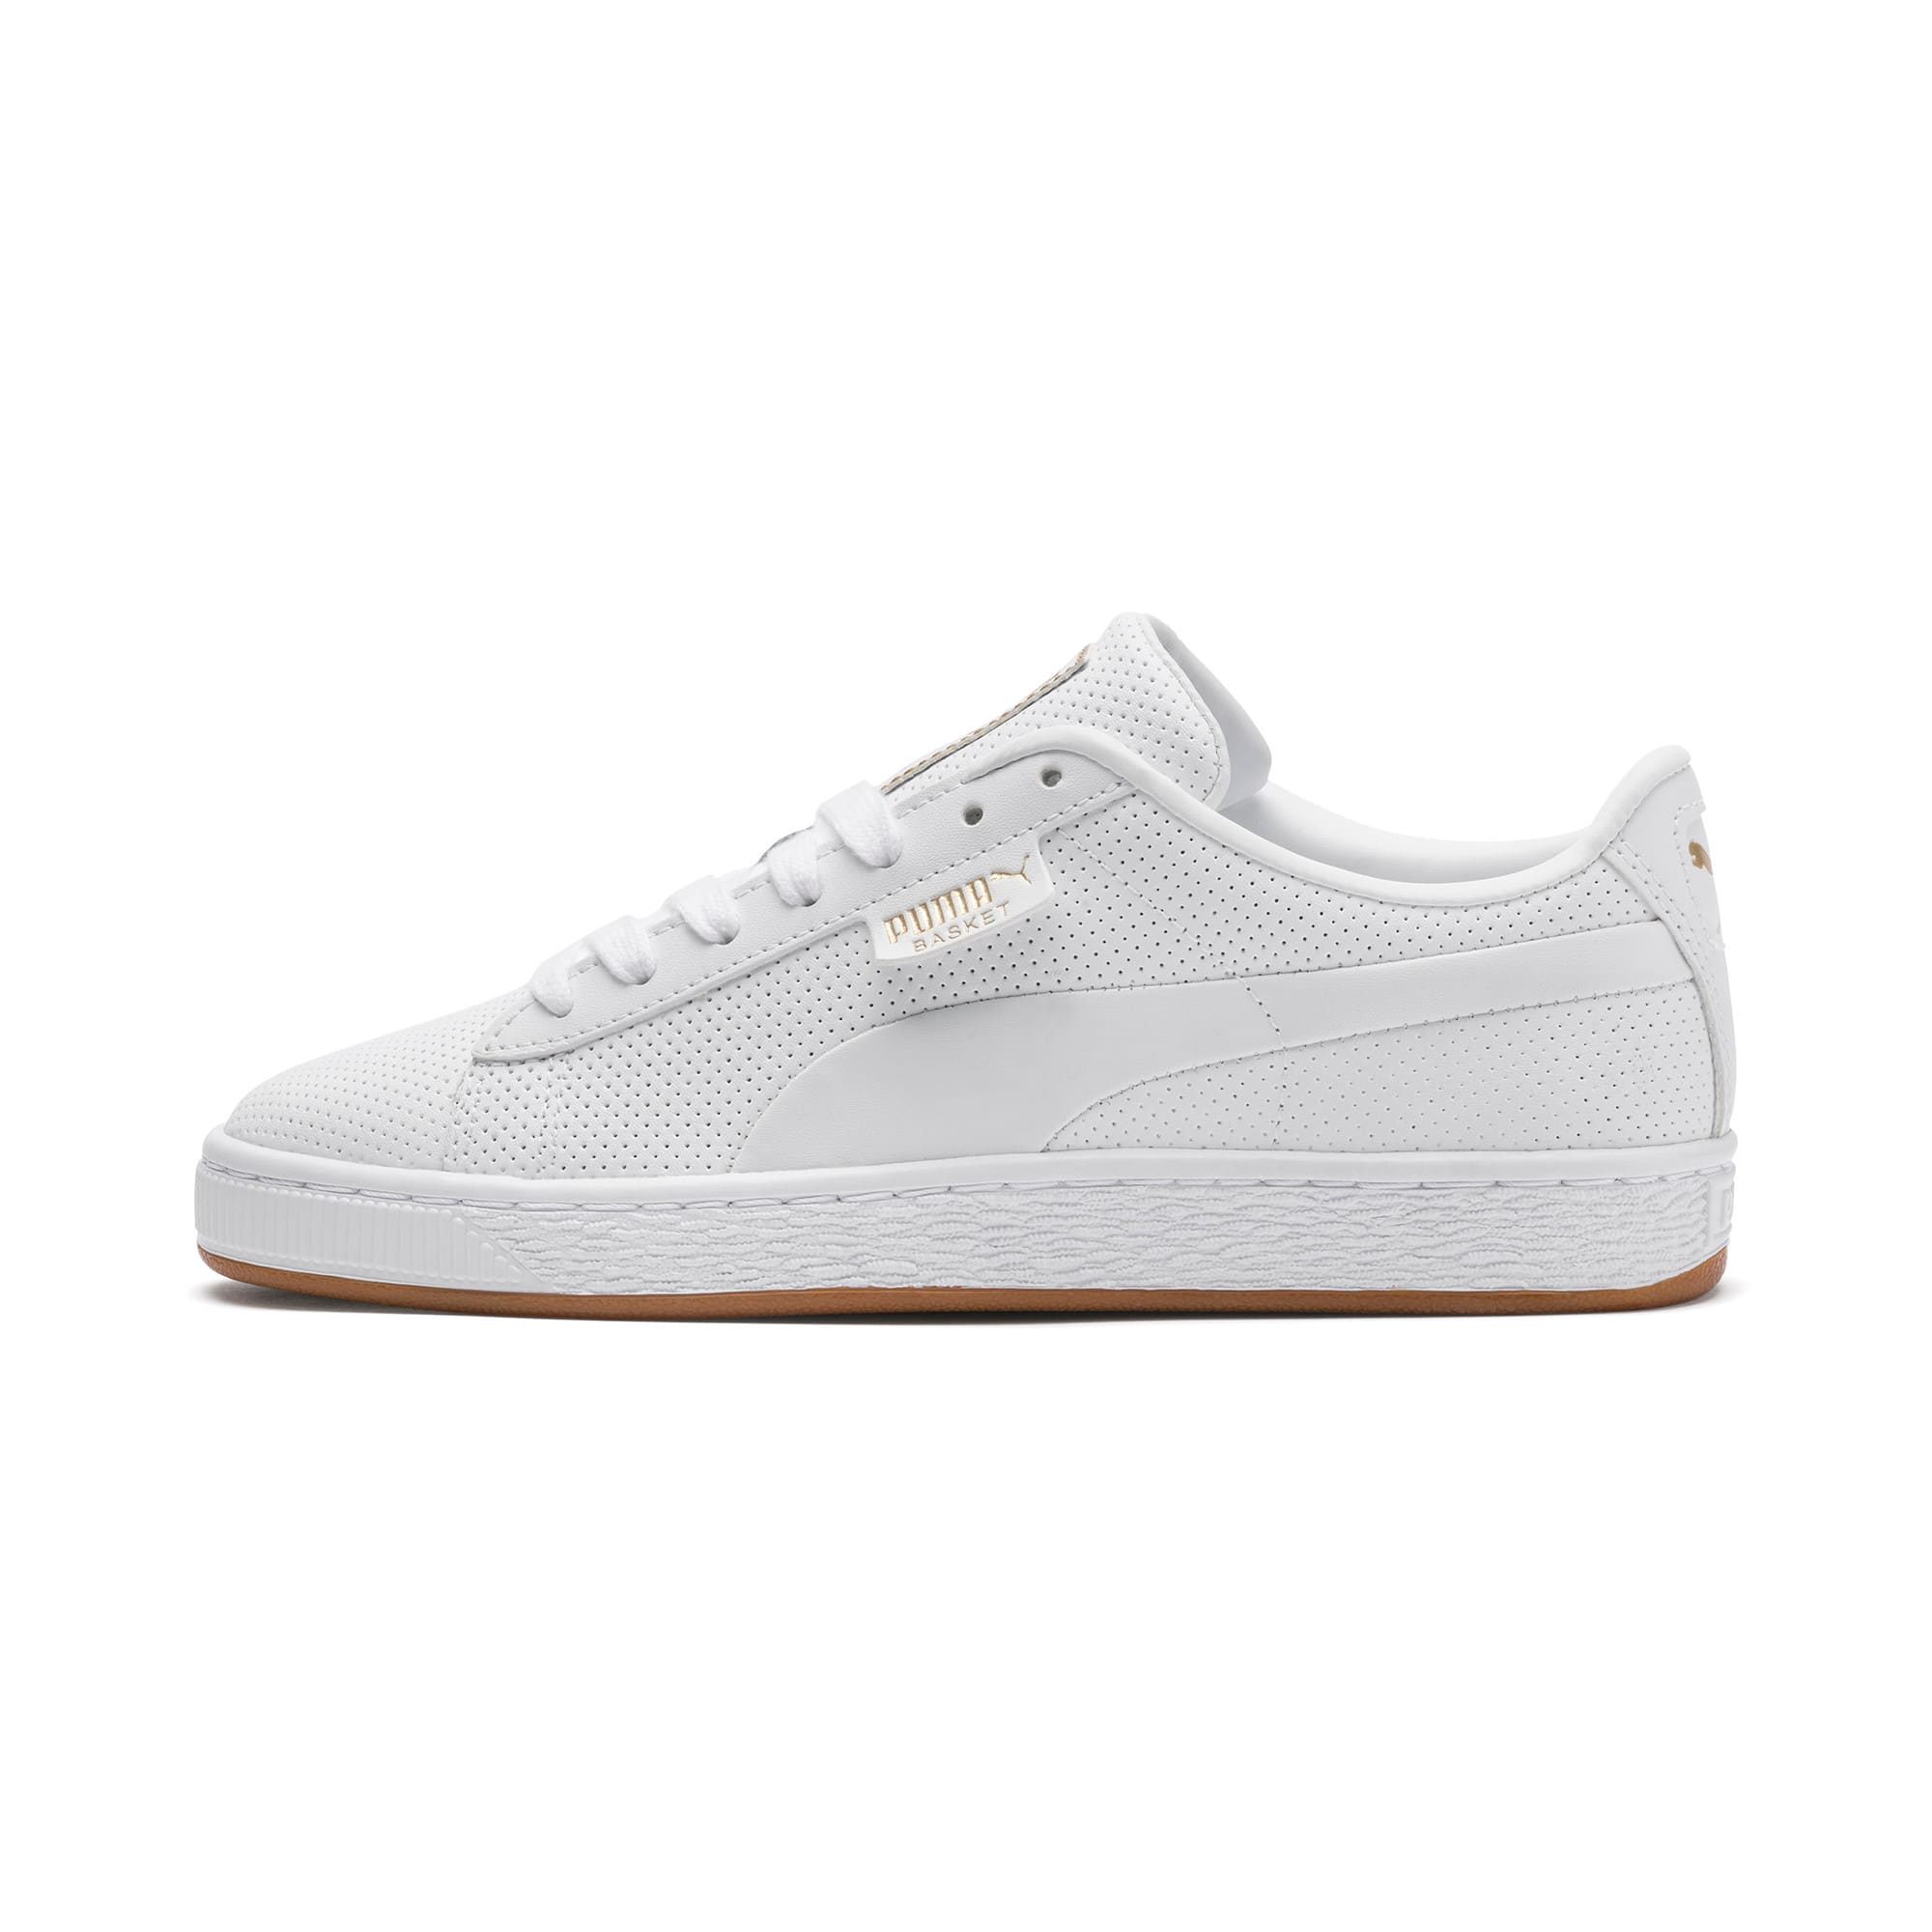 Thumbnail 1 of Basket Classic Gum Youth Sneaker, Puma White-Gum, medium